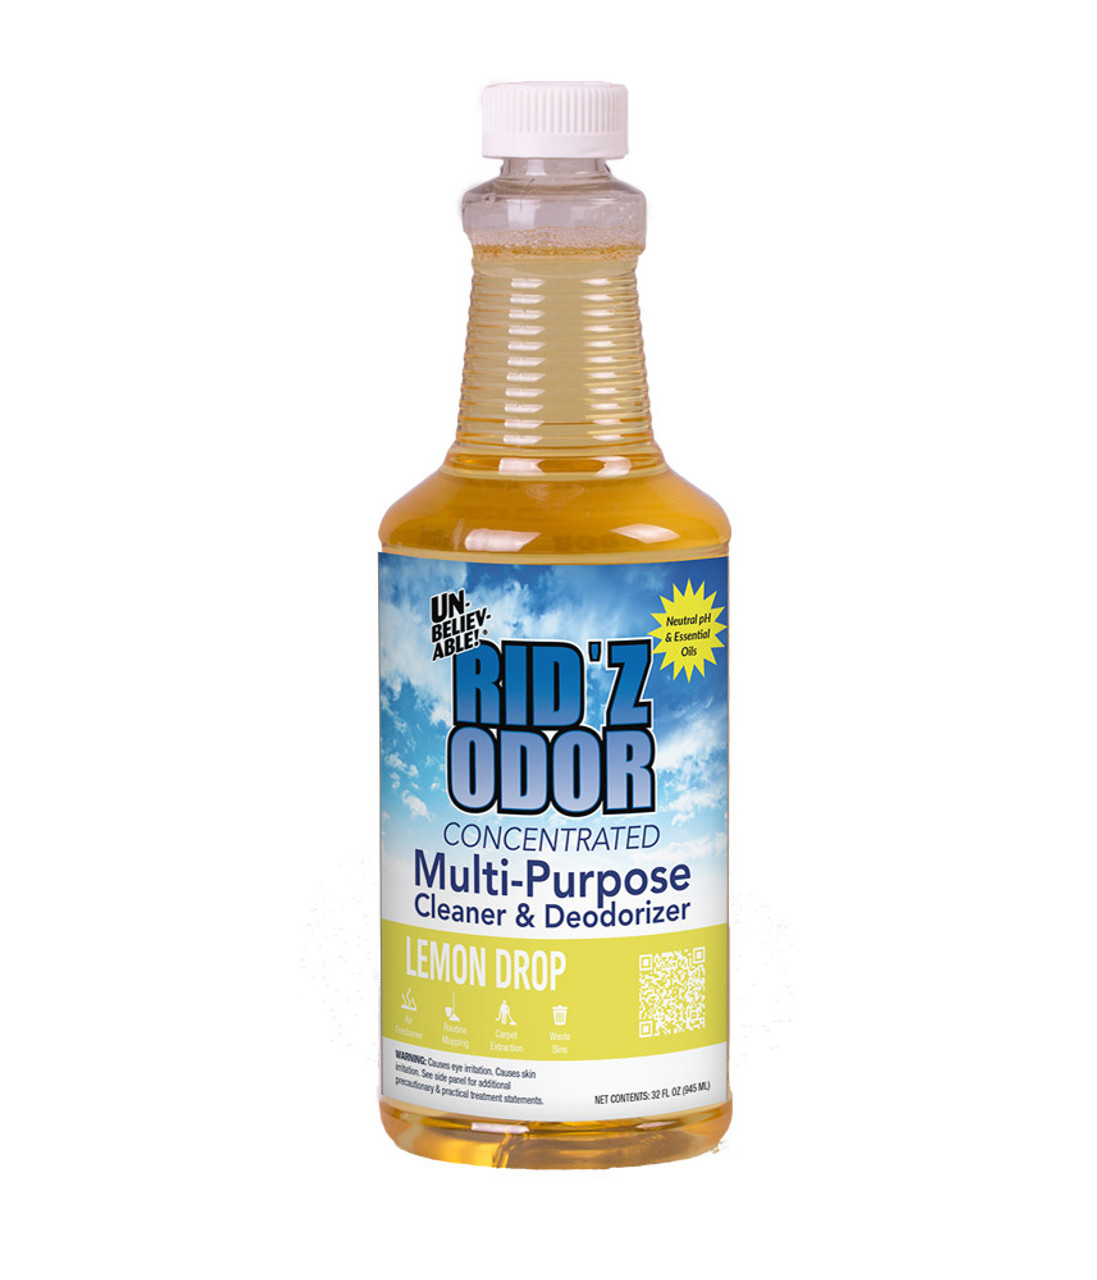 Counteracts and encapsulates odors.